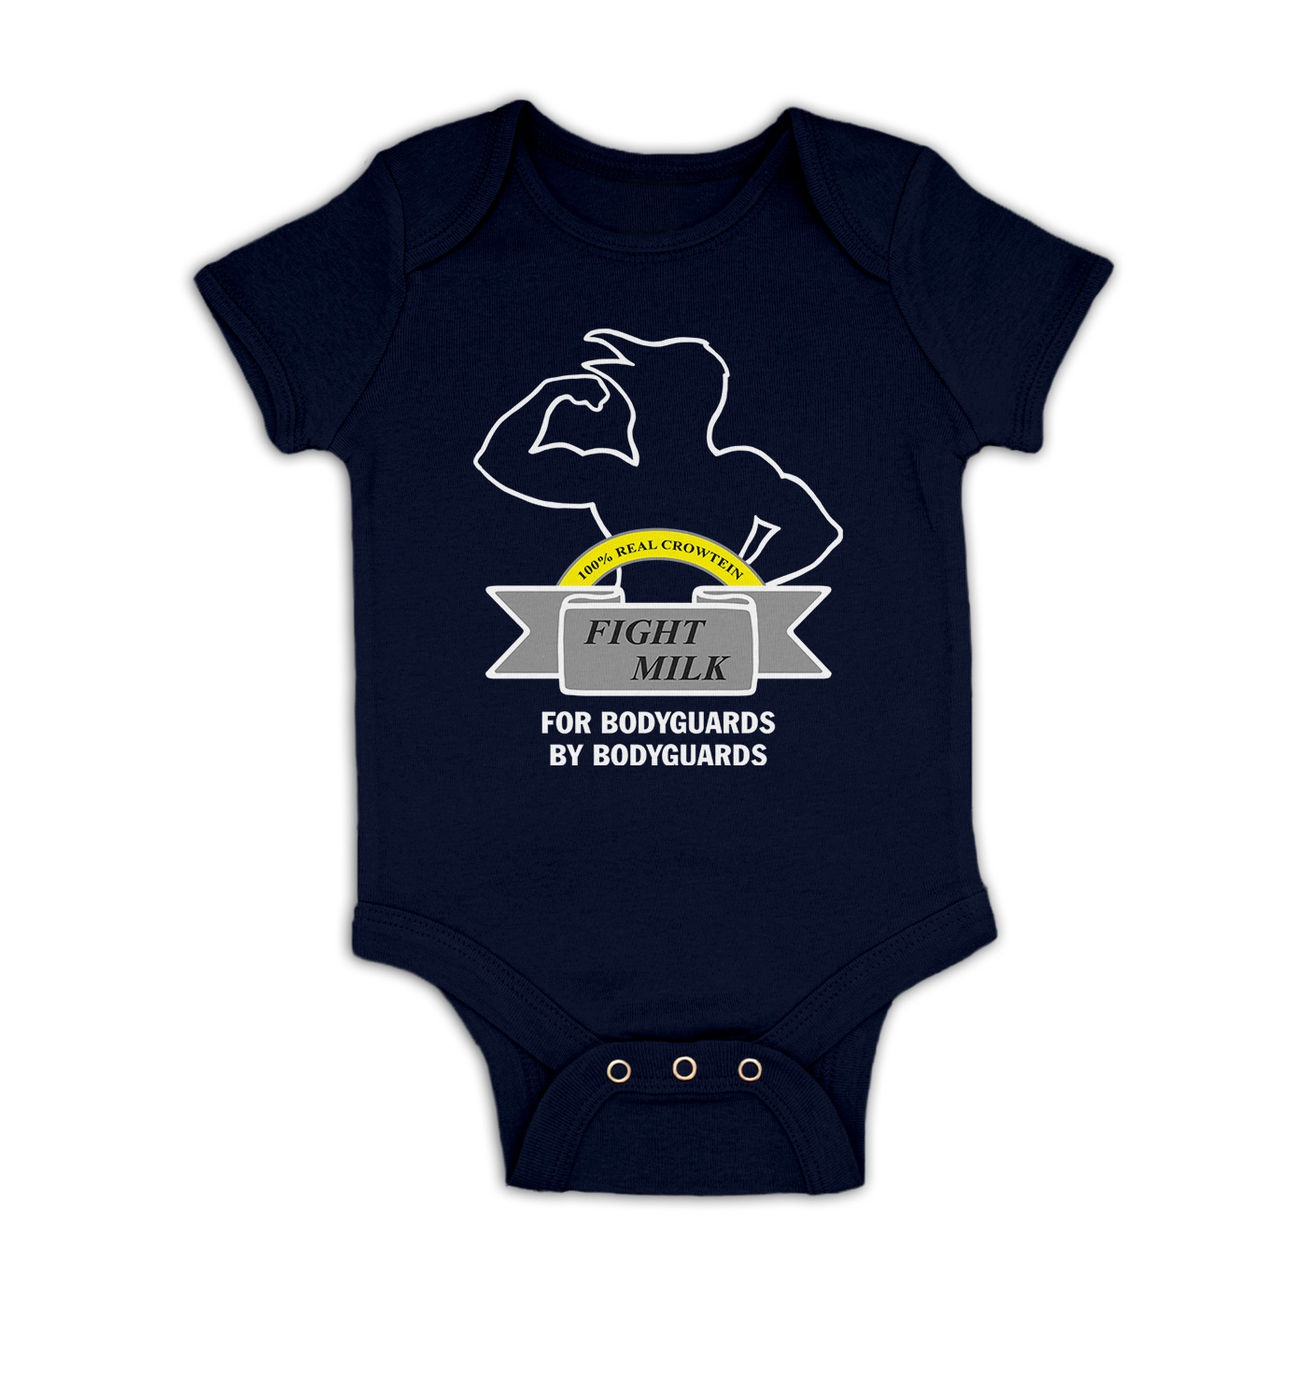 Fight Milk baby grow by Something Geeky